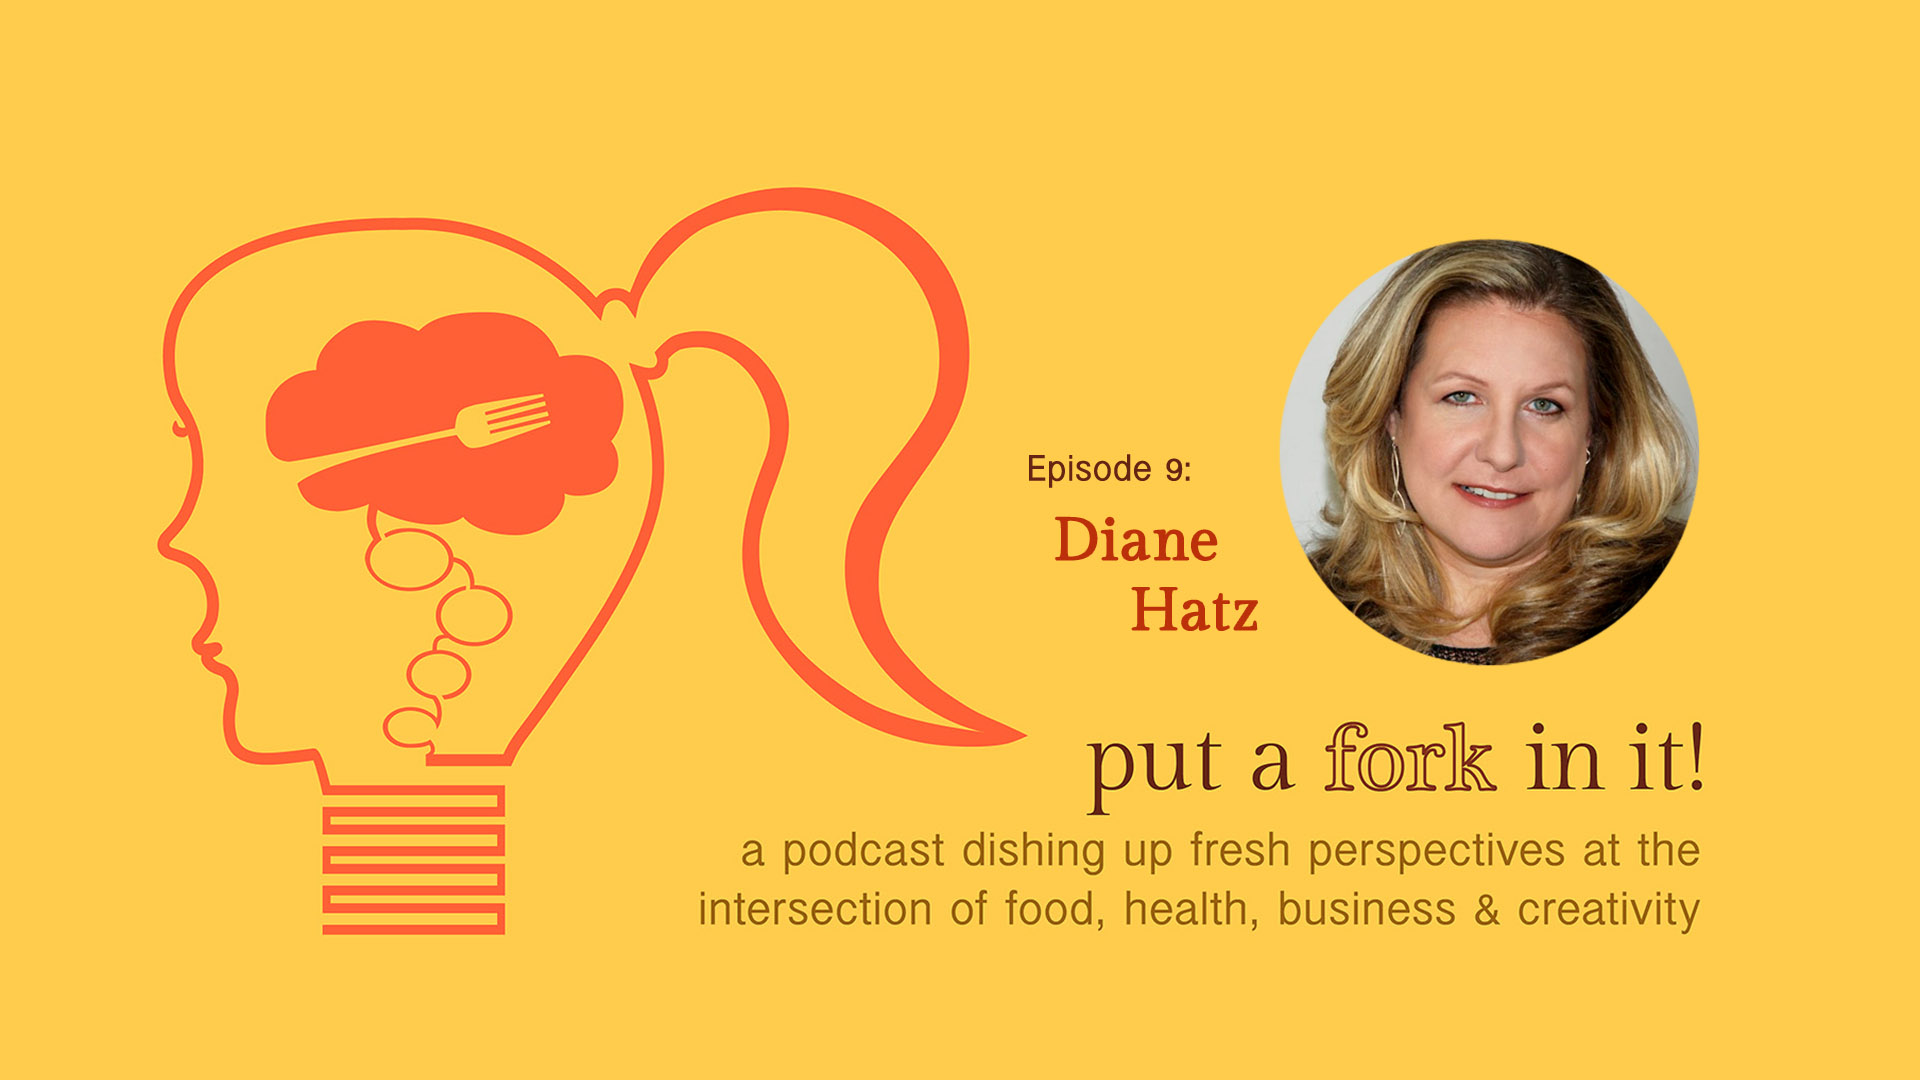 PAFII Episode 9: Diane Hatz, Founder & Executive Director of ChangeFood.org